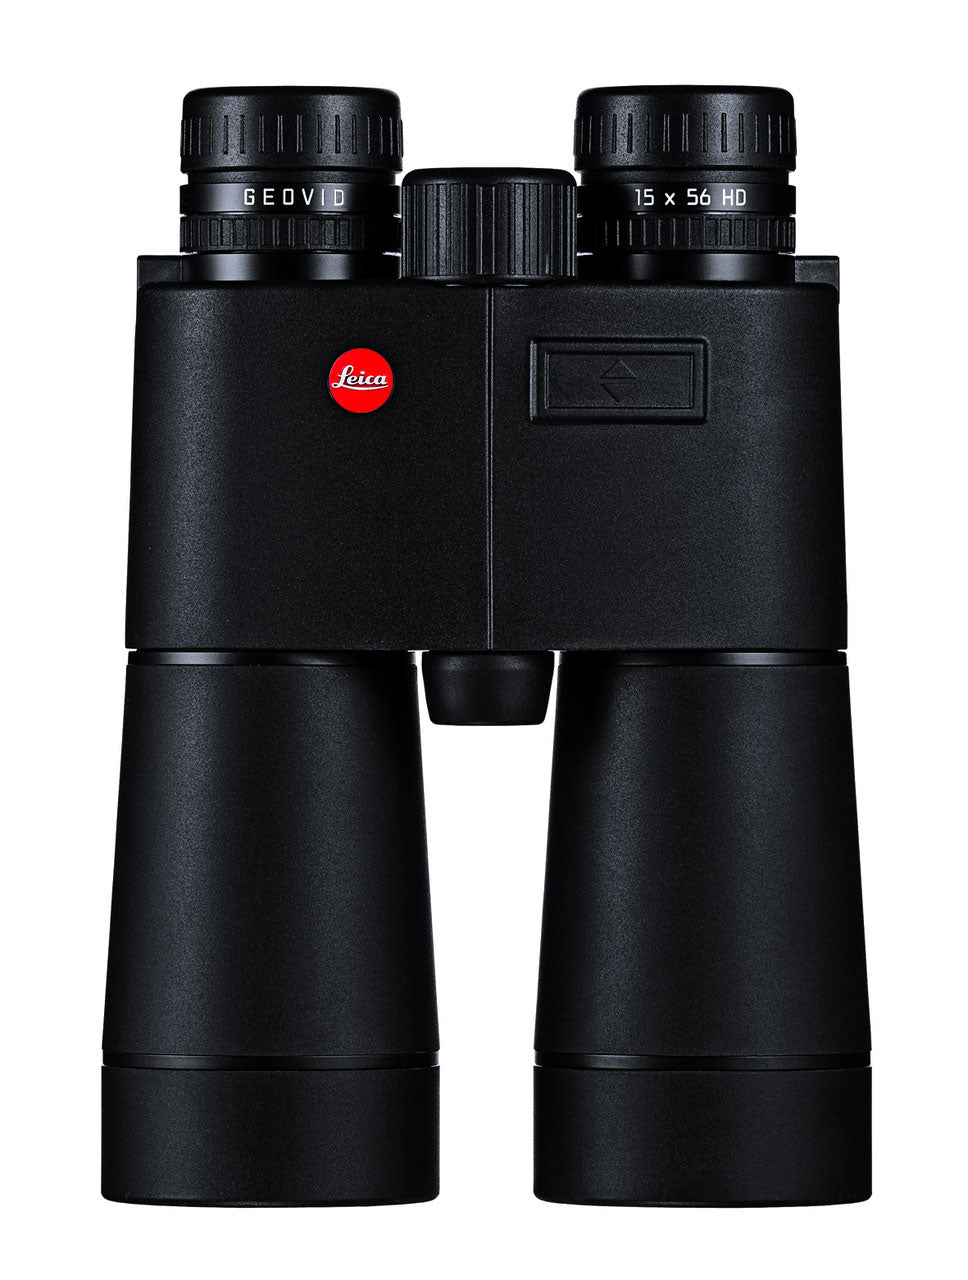 Leica 40043 15x56 Geovid HD Meters Water Proof Roof Prism Binocular